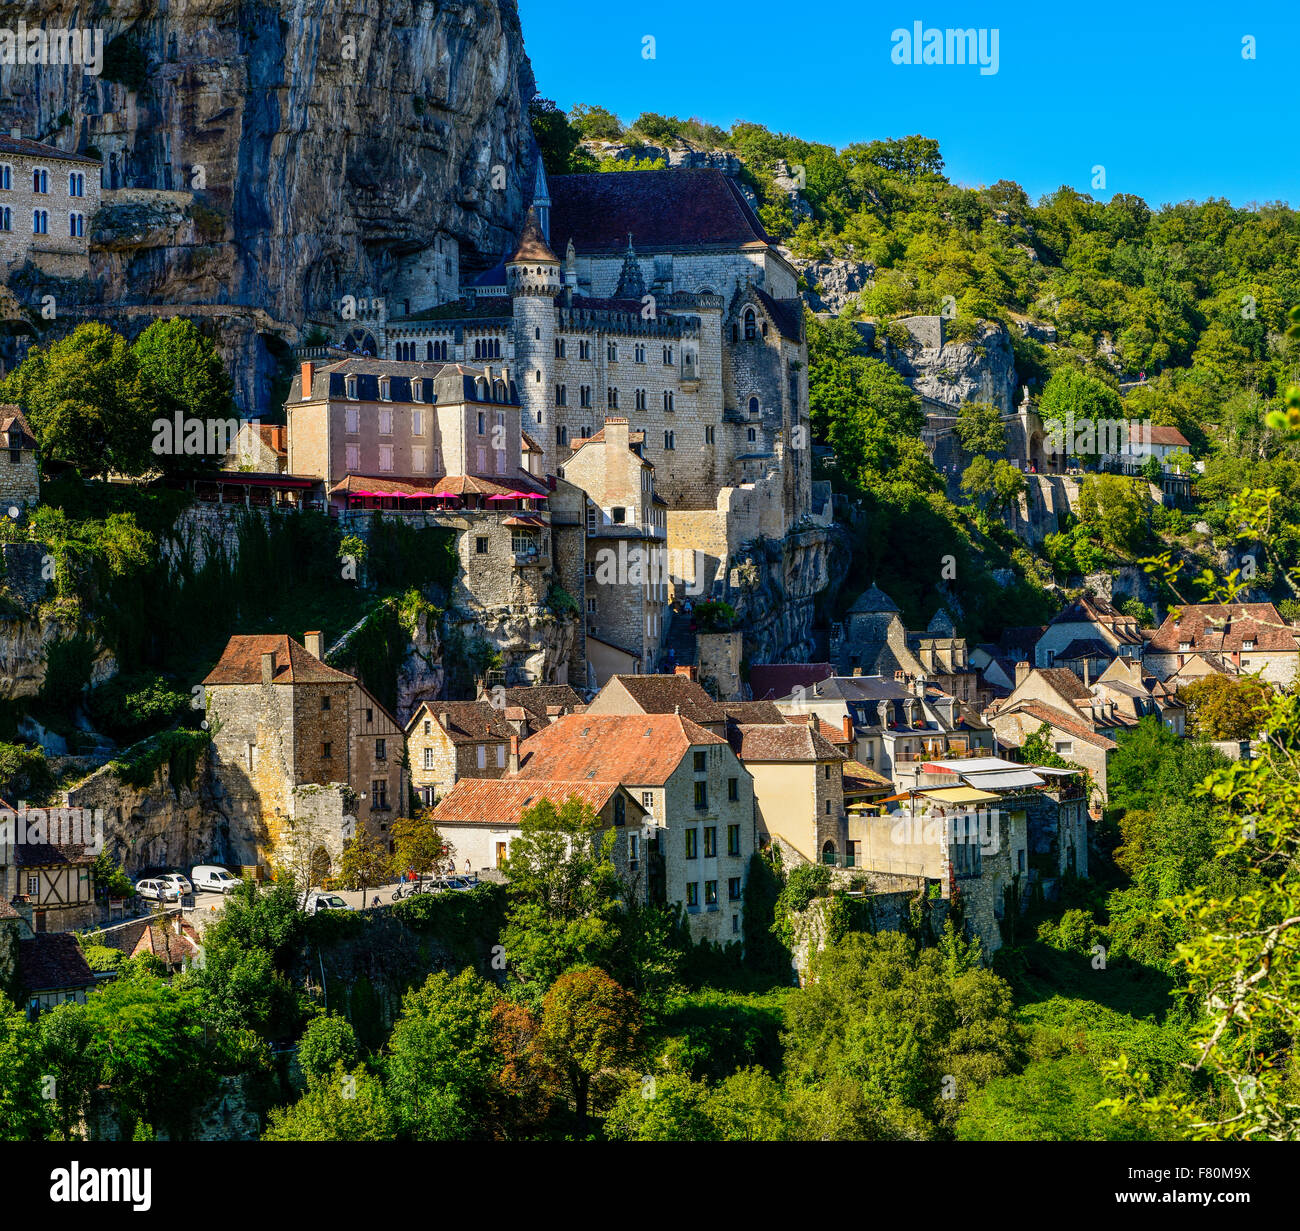 Rocamadour, Lot, Midi-Pyrenees, France - Stock Image